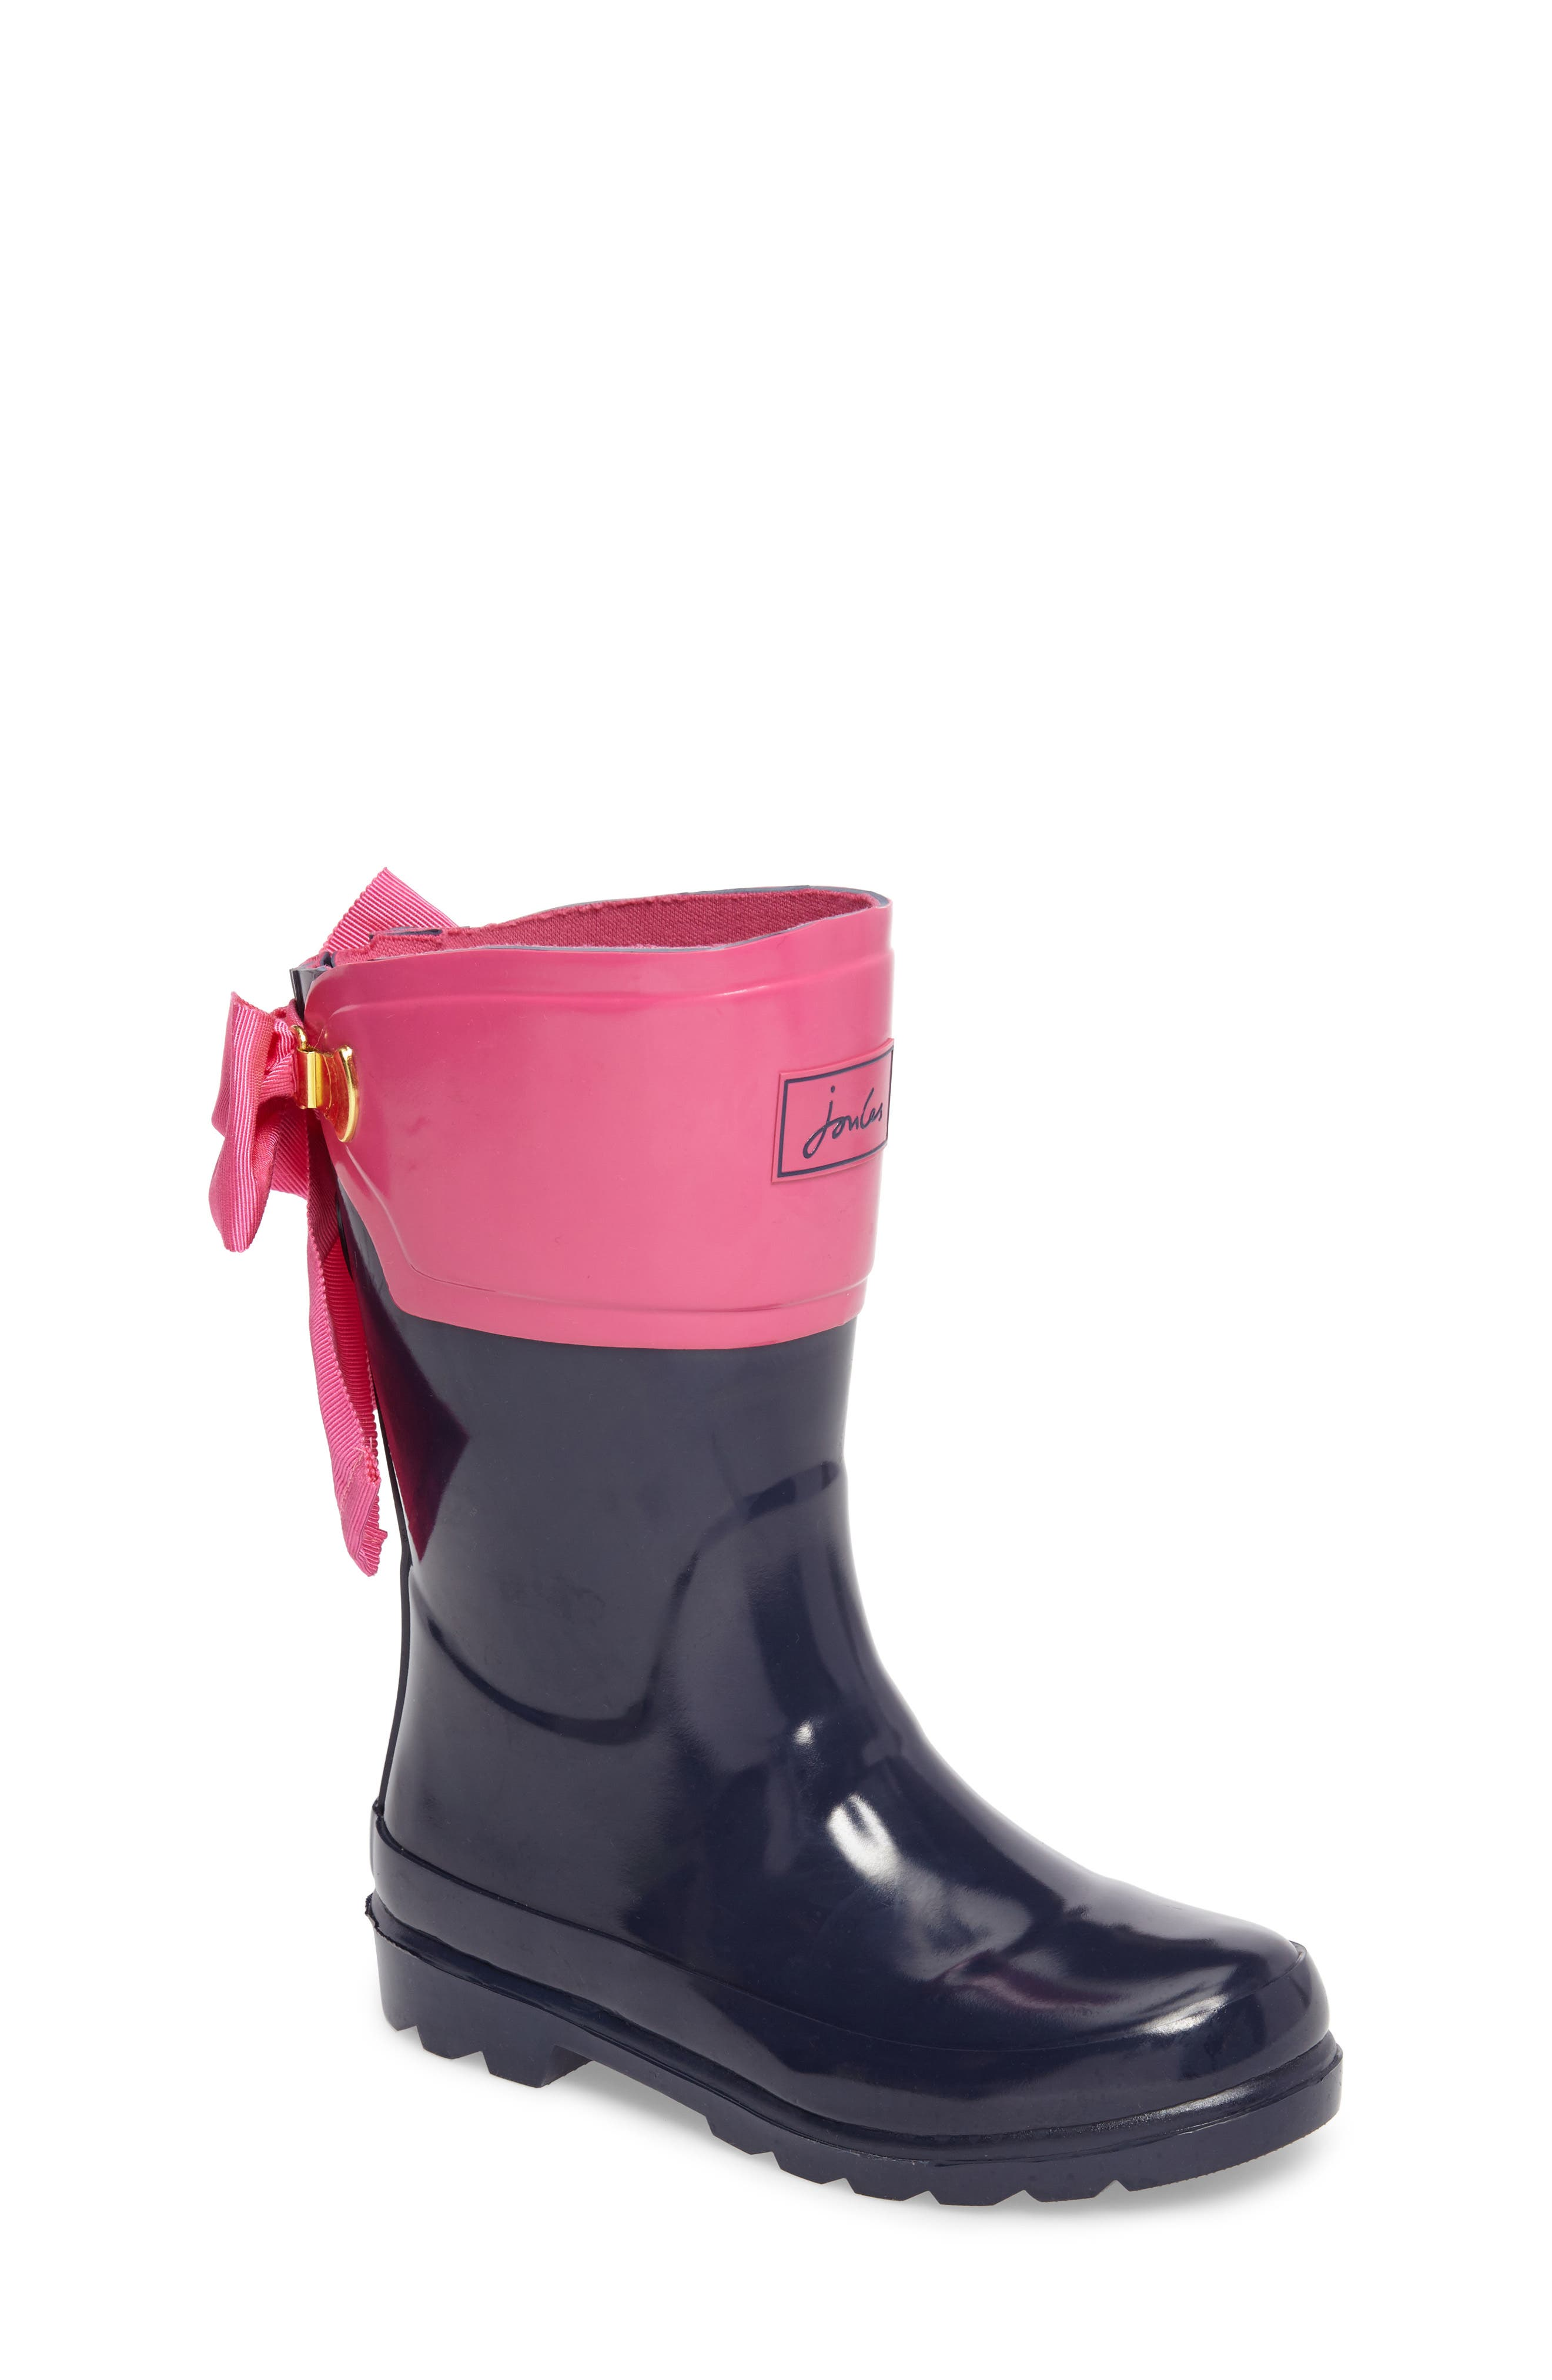 Main Image - Joules Evedon Bow Waterproof Rain Boot (Toddler, Little Kid & Big Kid)